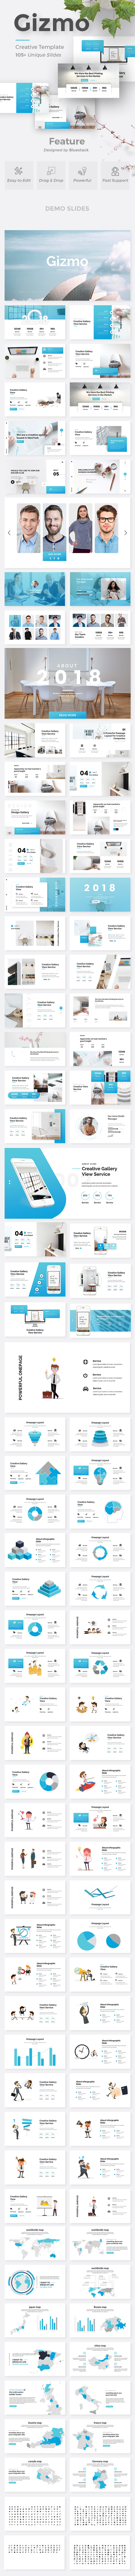 Gizmo Creative Powerpoint Template - Creative PowerPoint Templates